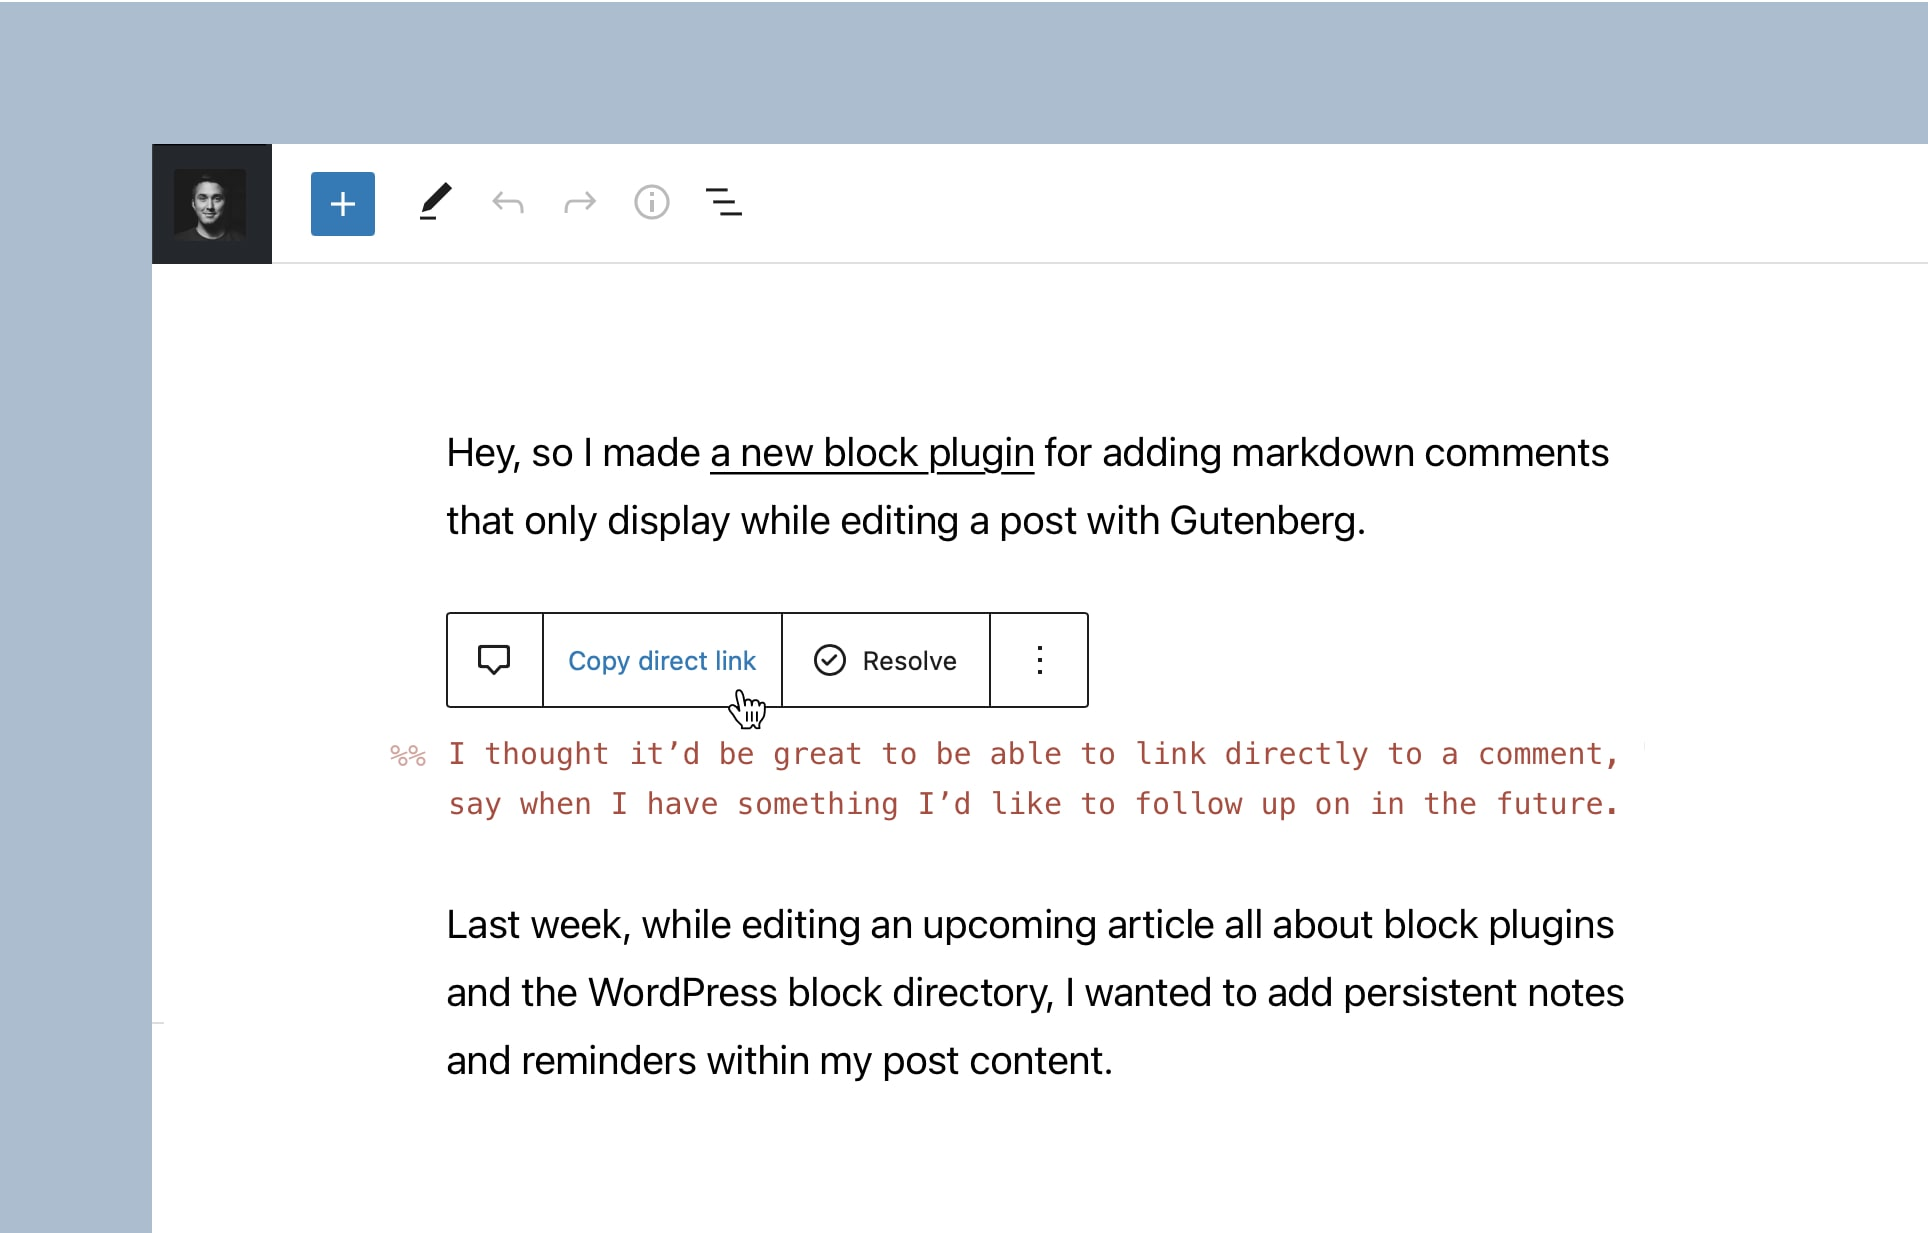 I wanted to directly link to individual comments within the editor.